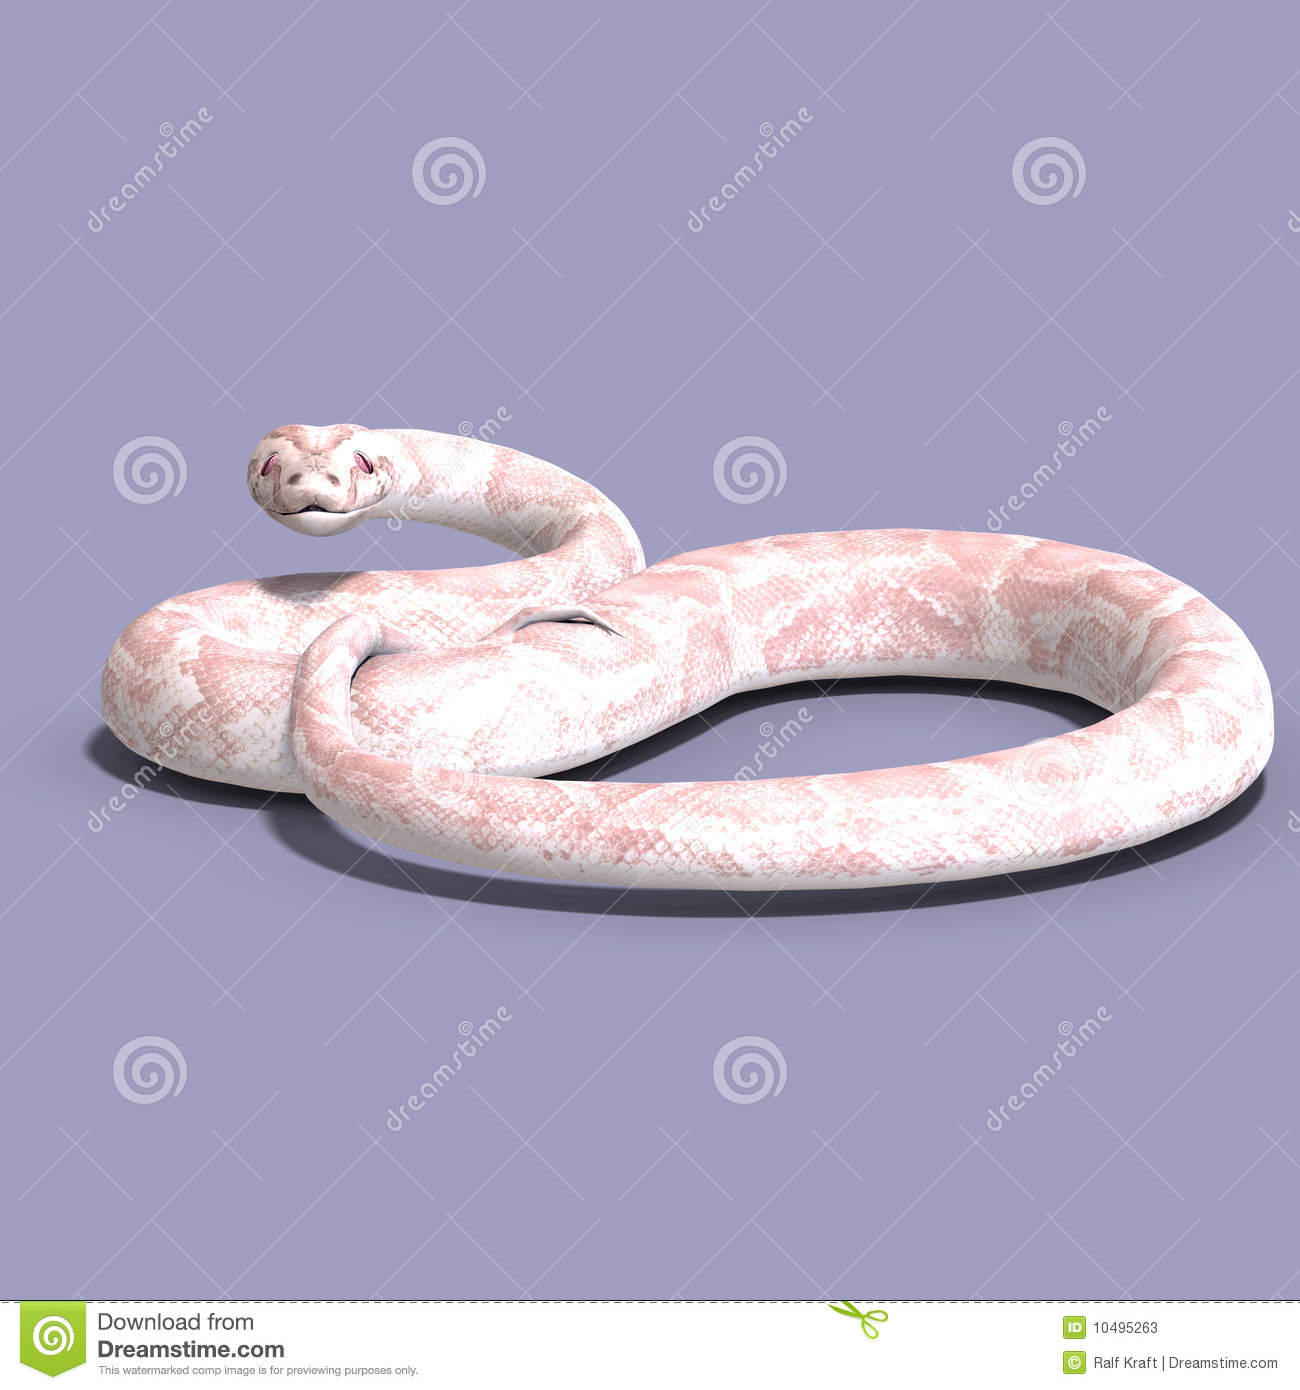 3D rendering of a white ball python with clipping path and shadow over ...